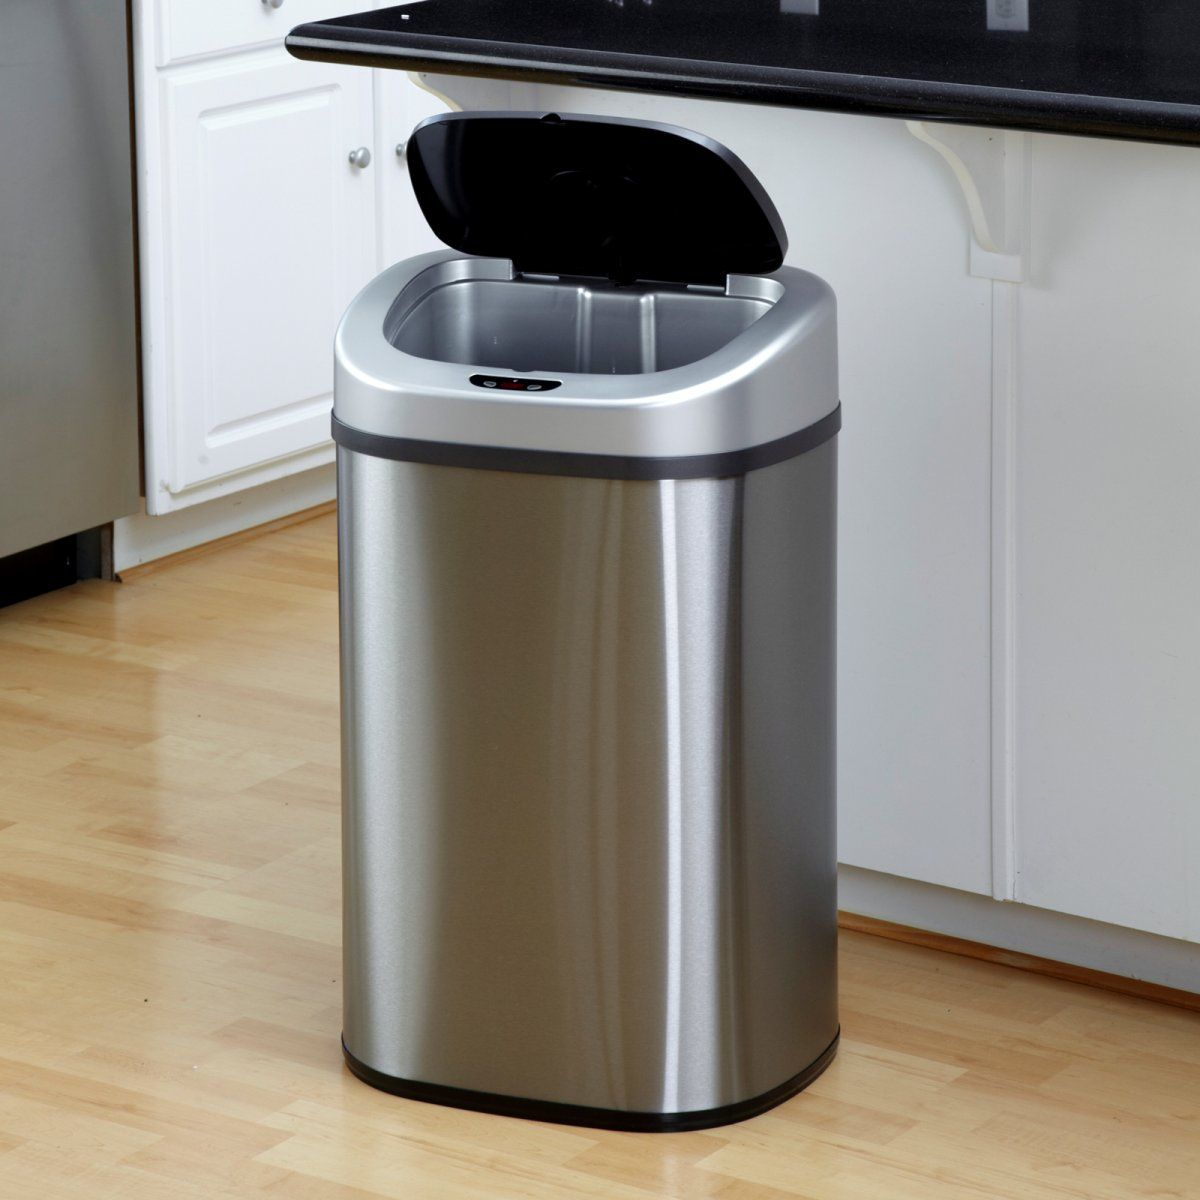 Nine stars dzt 80 4 touchless stainless steel 21 1 gallon trash can kitchen trash cans at all - White kitchen trash cans ...